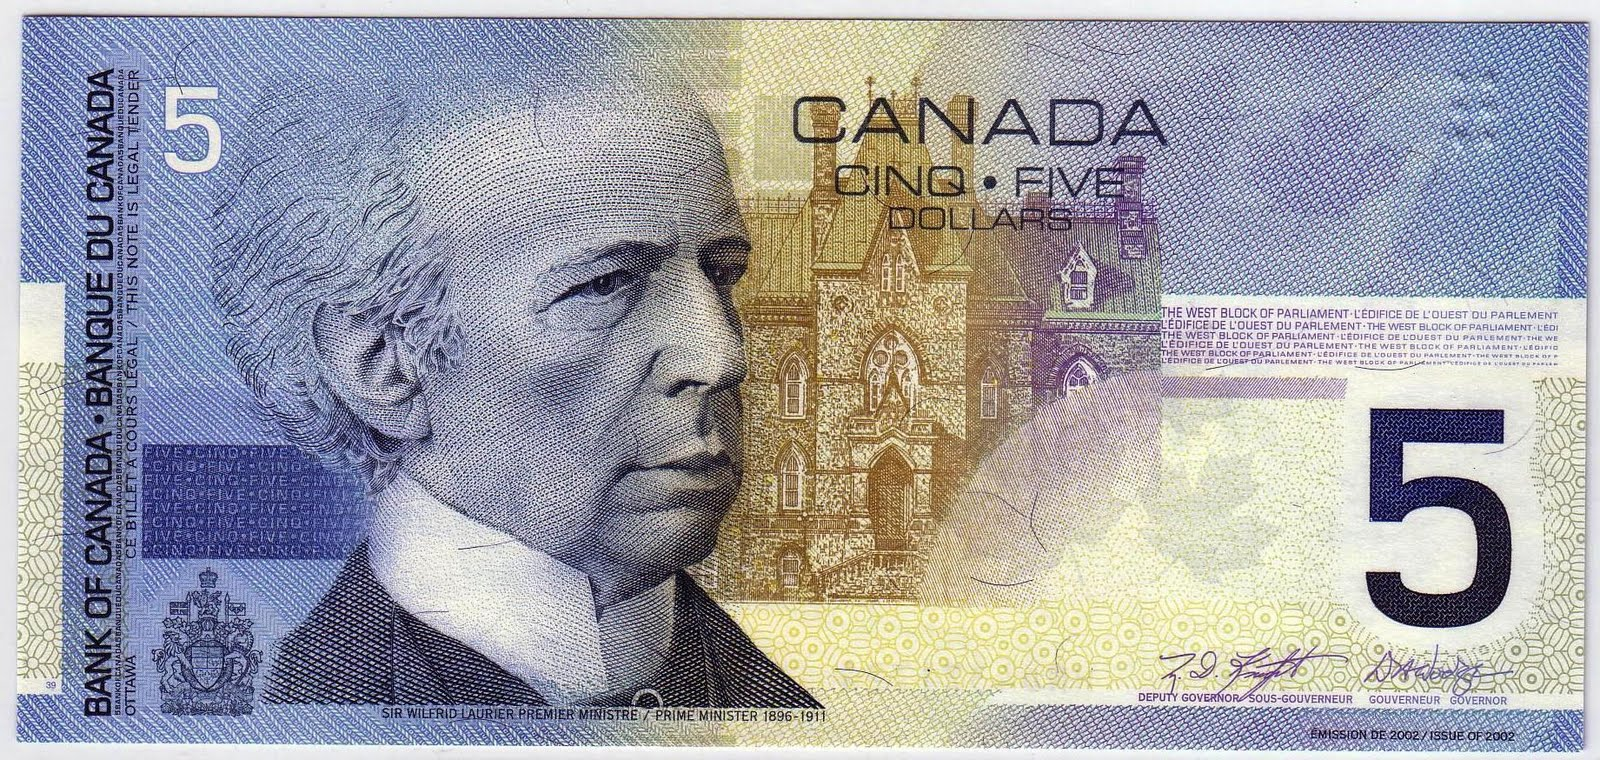 world banknotes  canada journey series mismatched serial